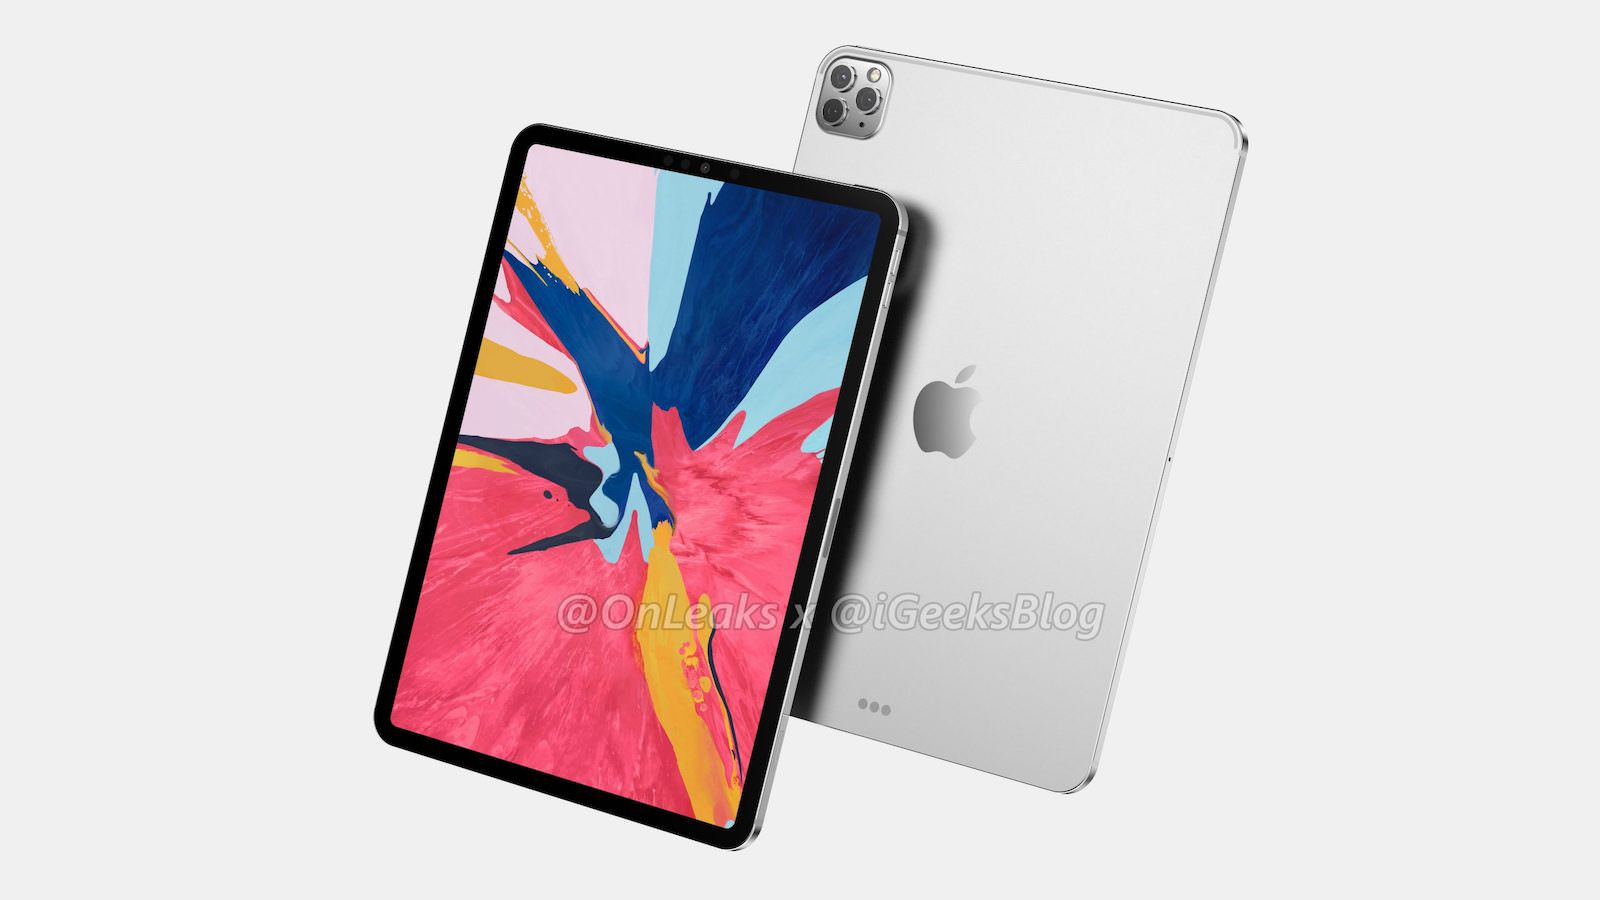 New render show 2020 11 inch iPad Pro scaled